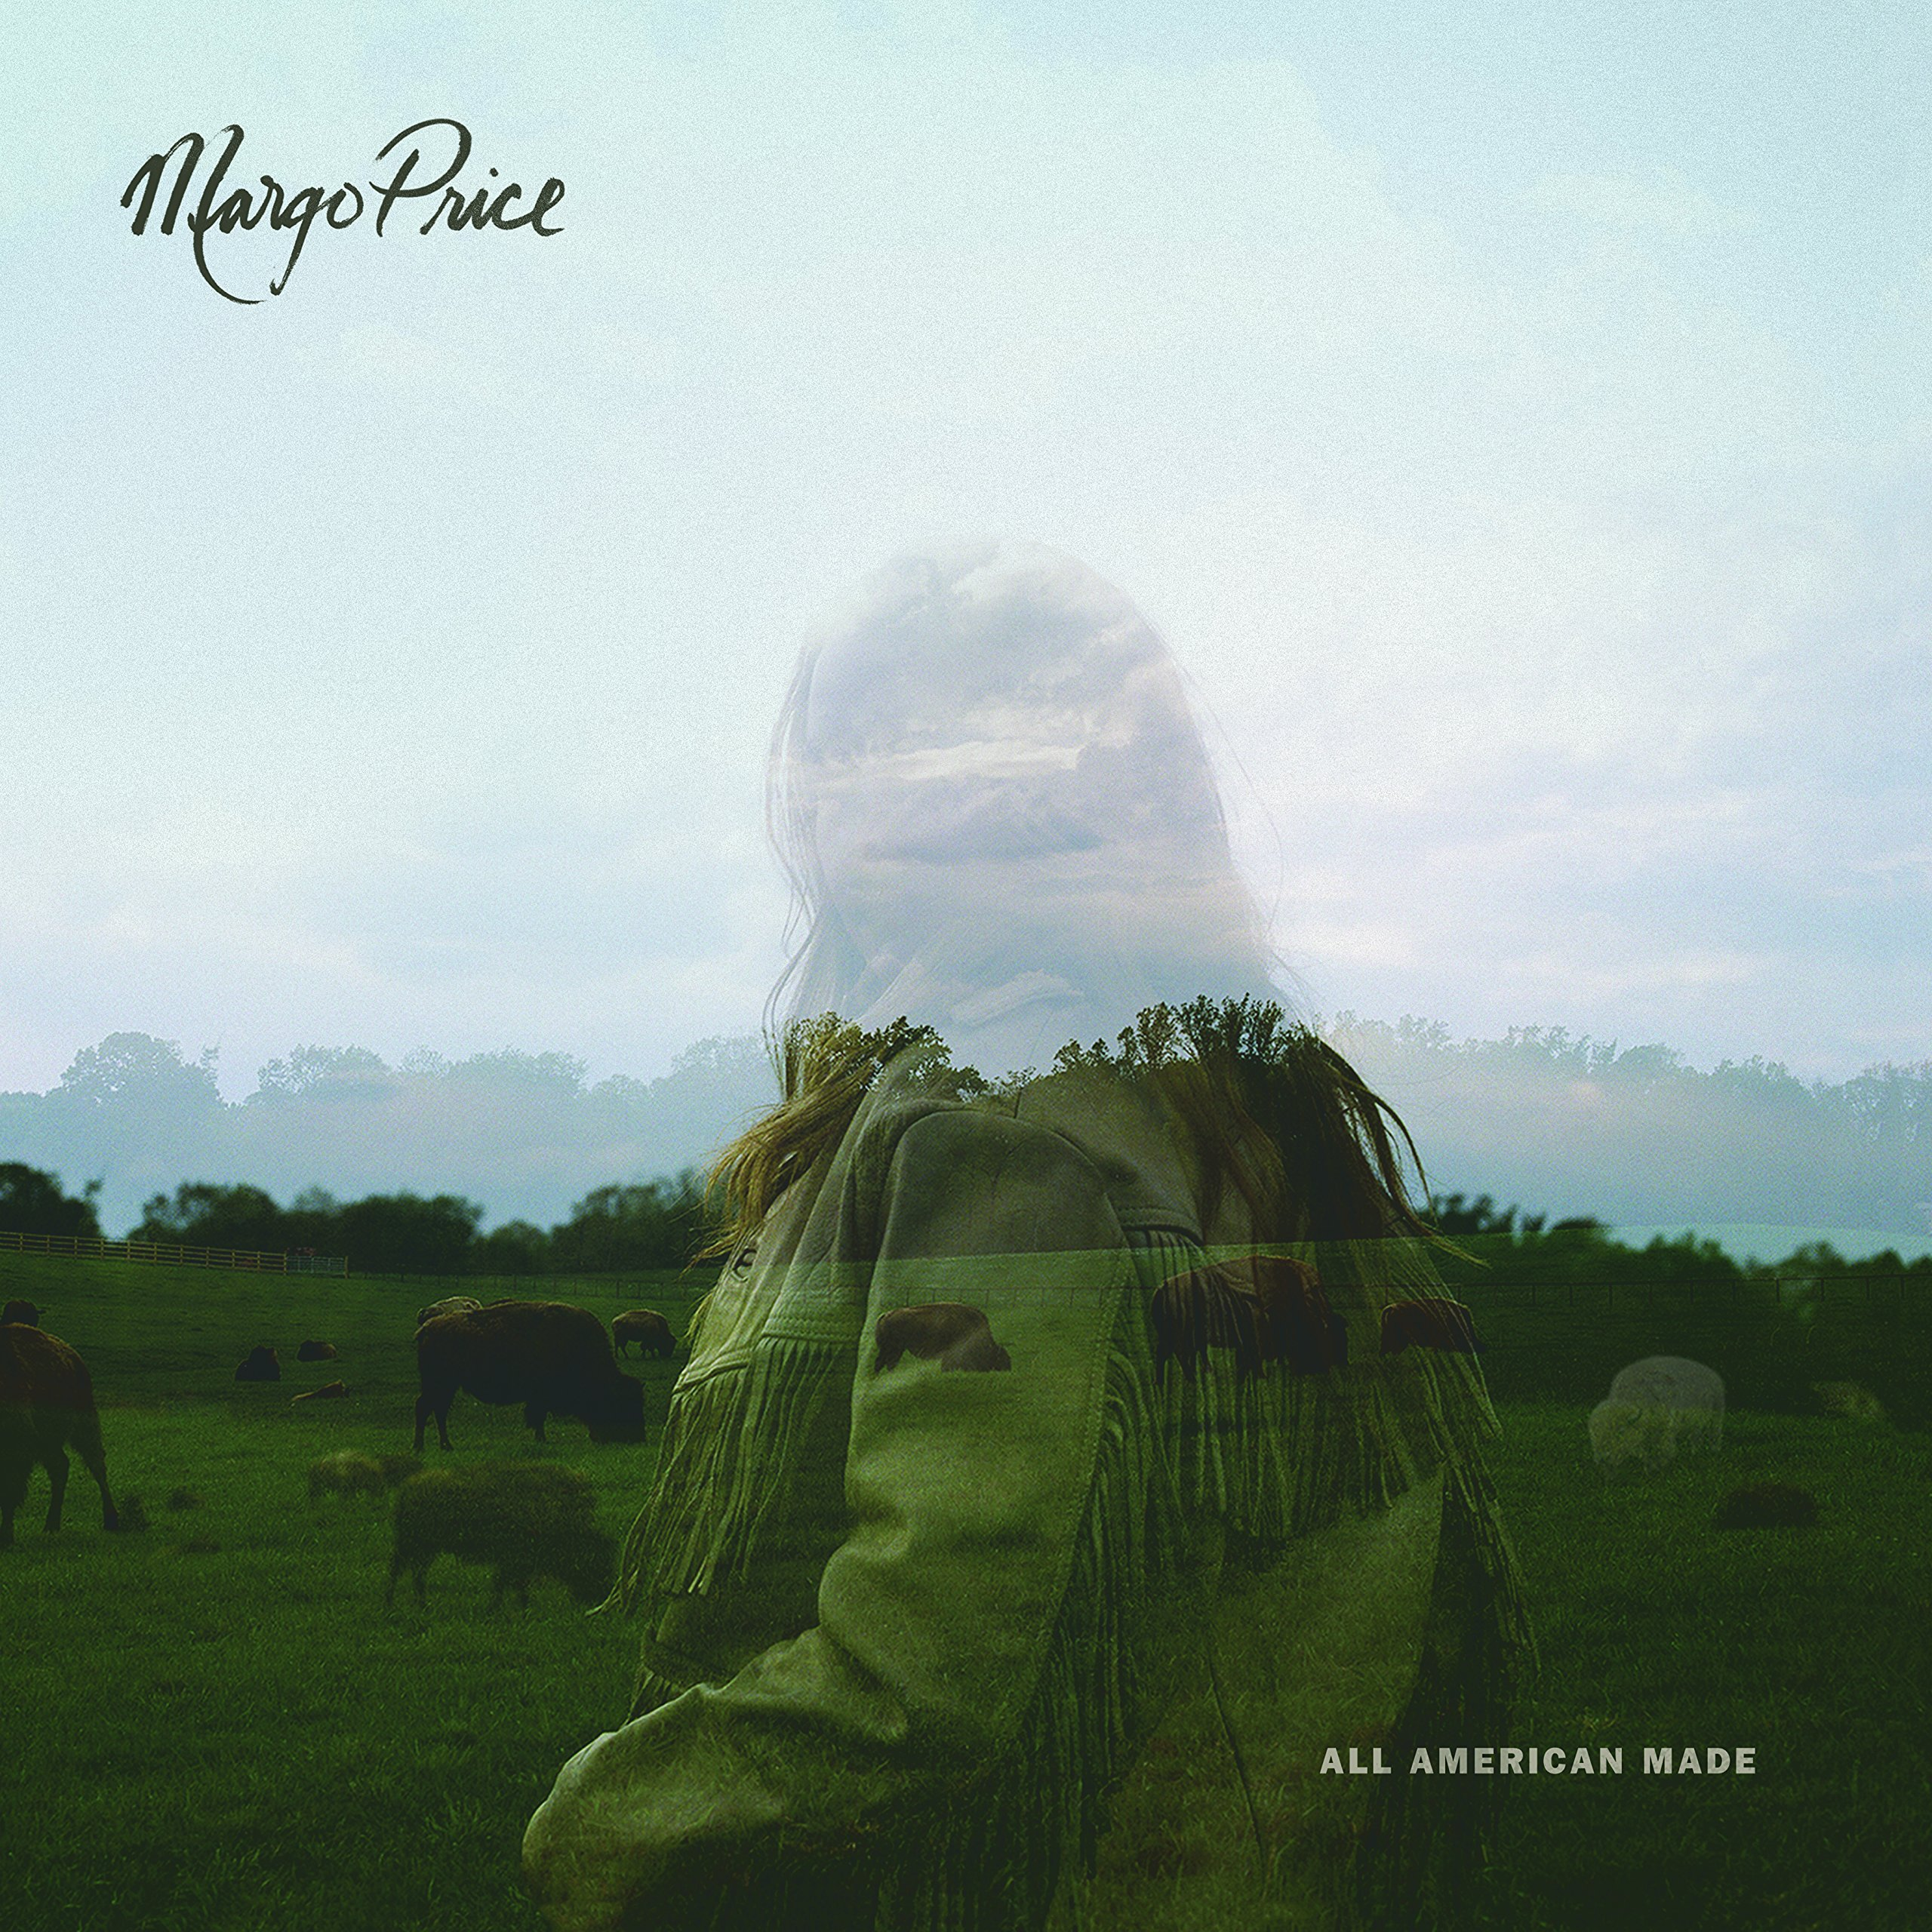 Cassette : Margo Price - All American Made (Cassette)